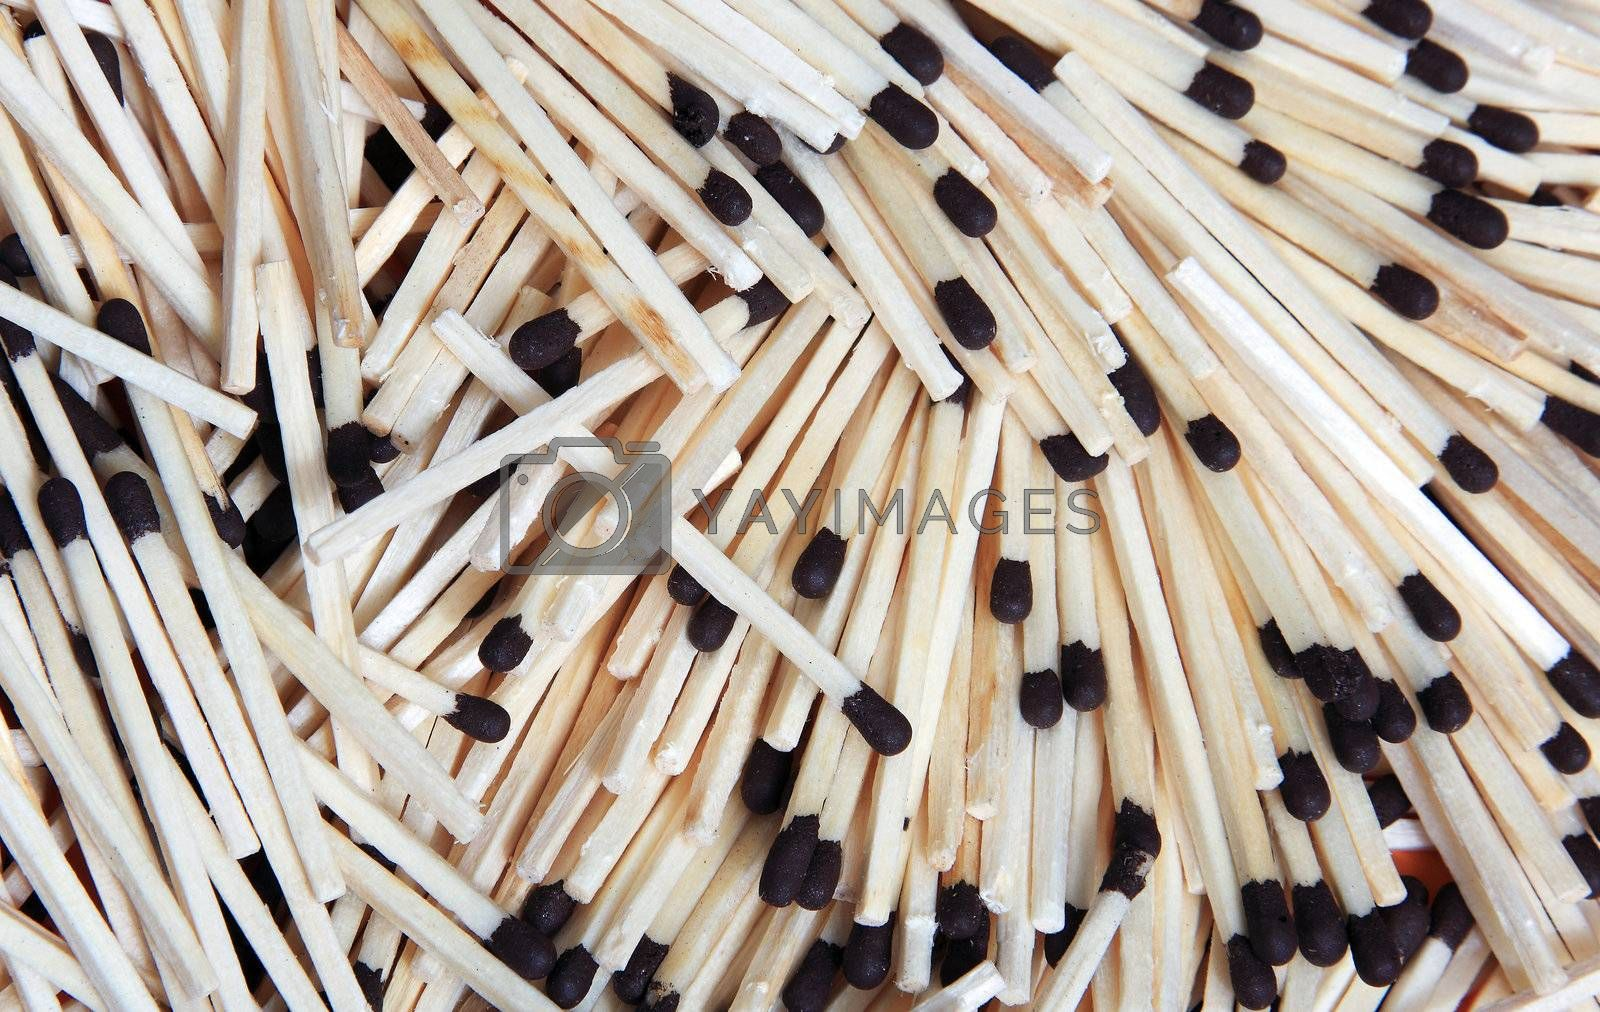 Texture of the wooden matches